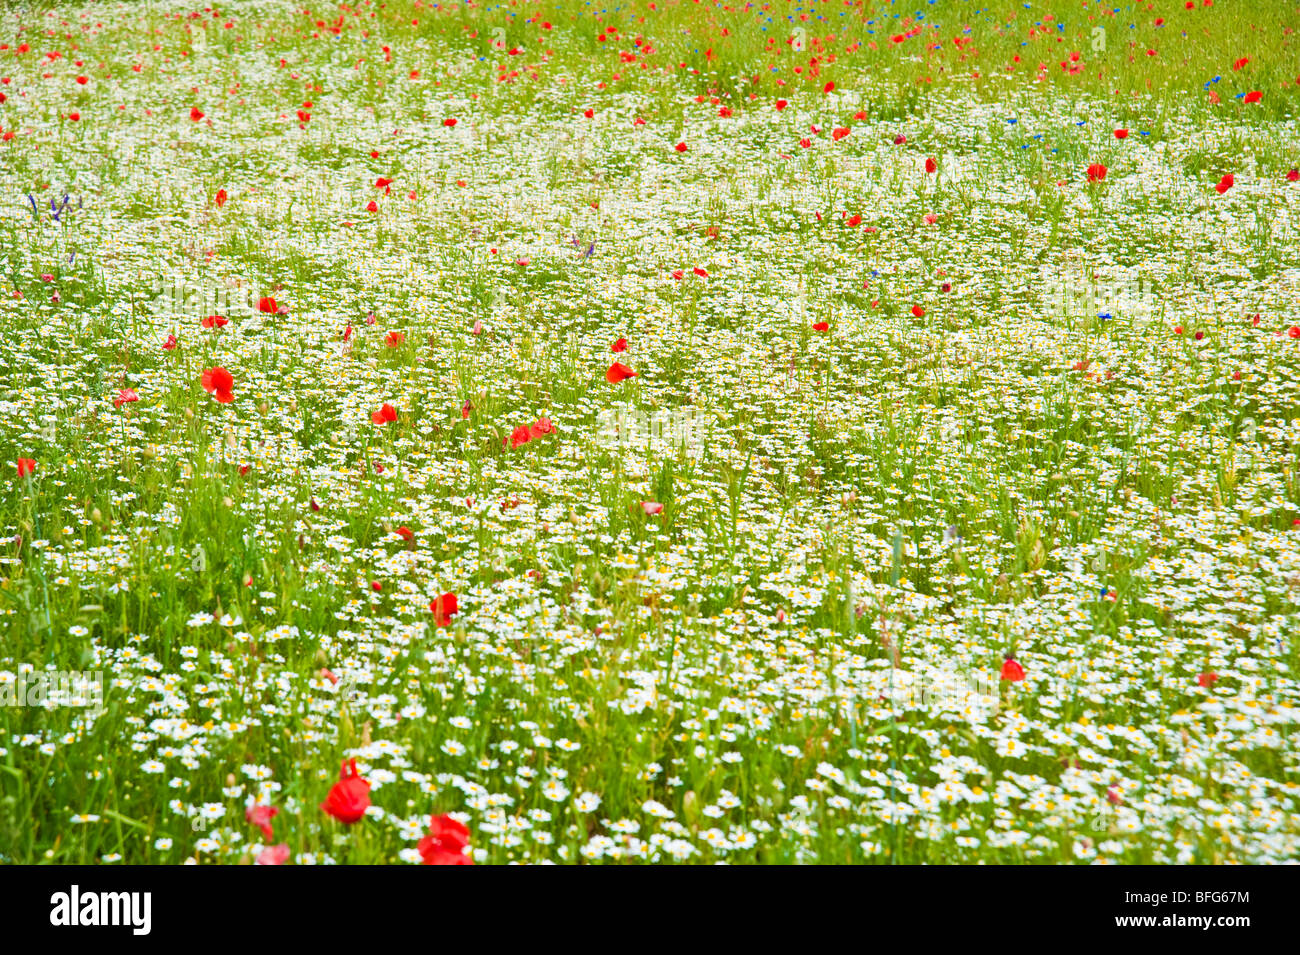 Meadow With Colorful Flowers Like Poppies And Marguerites Wiese